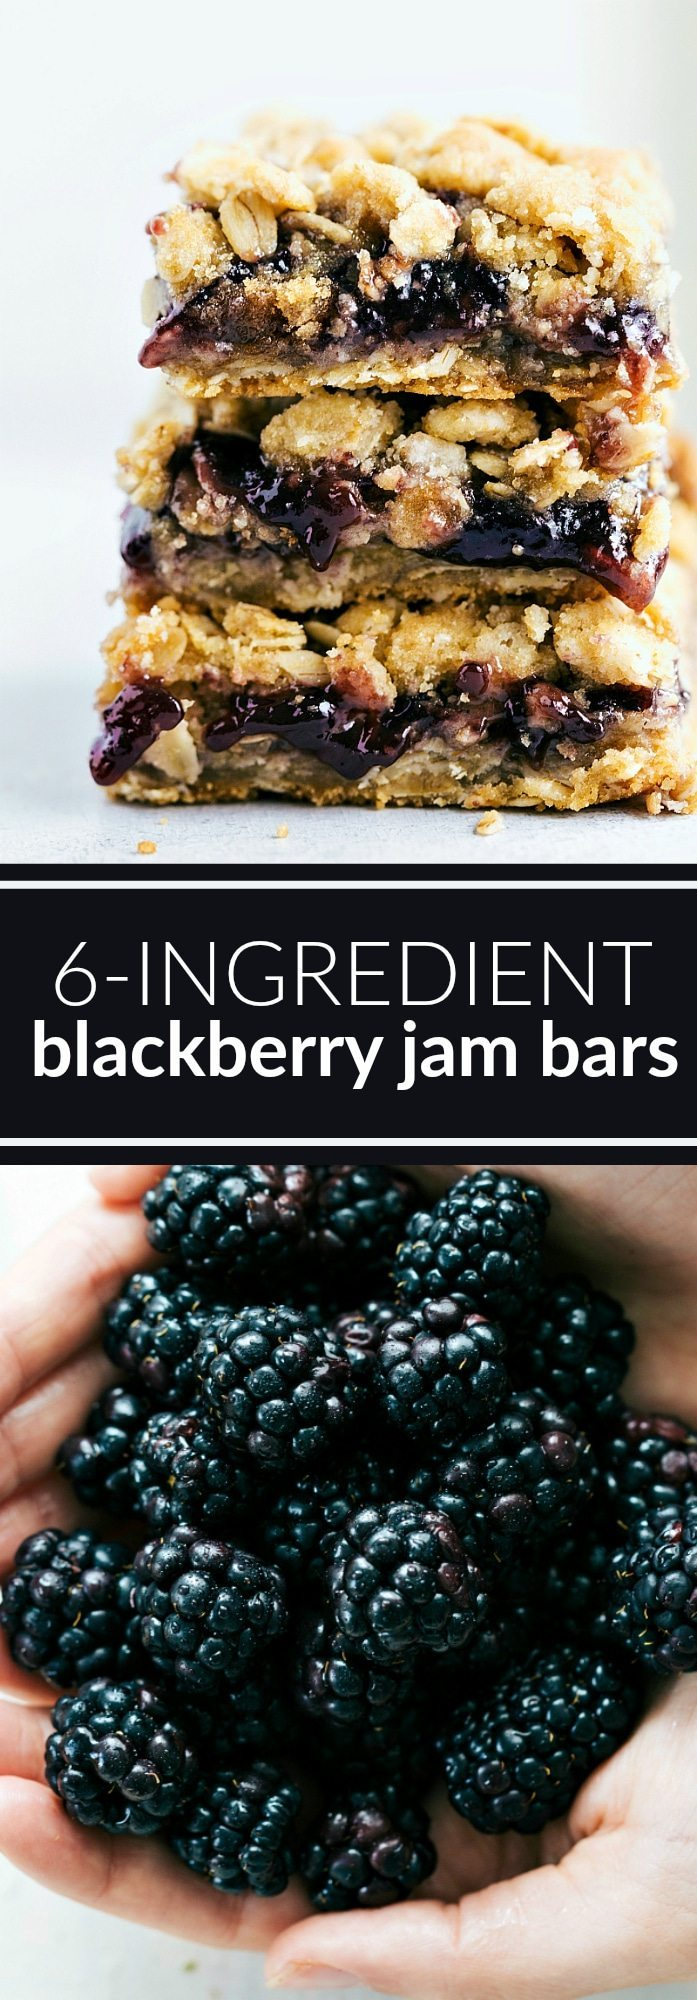 Incredibly simple and delicious oatmeal cookie jam bars. These bars come together in less than 30 minutes and only require 6 ingredients! via chelseasmessyapron.com